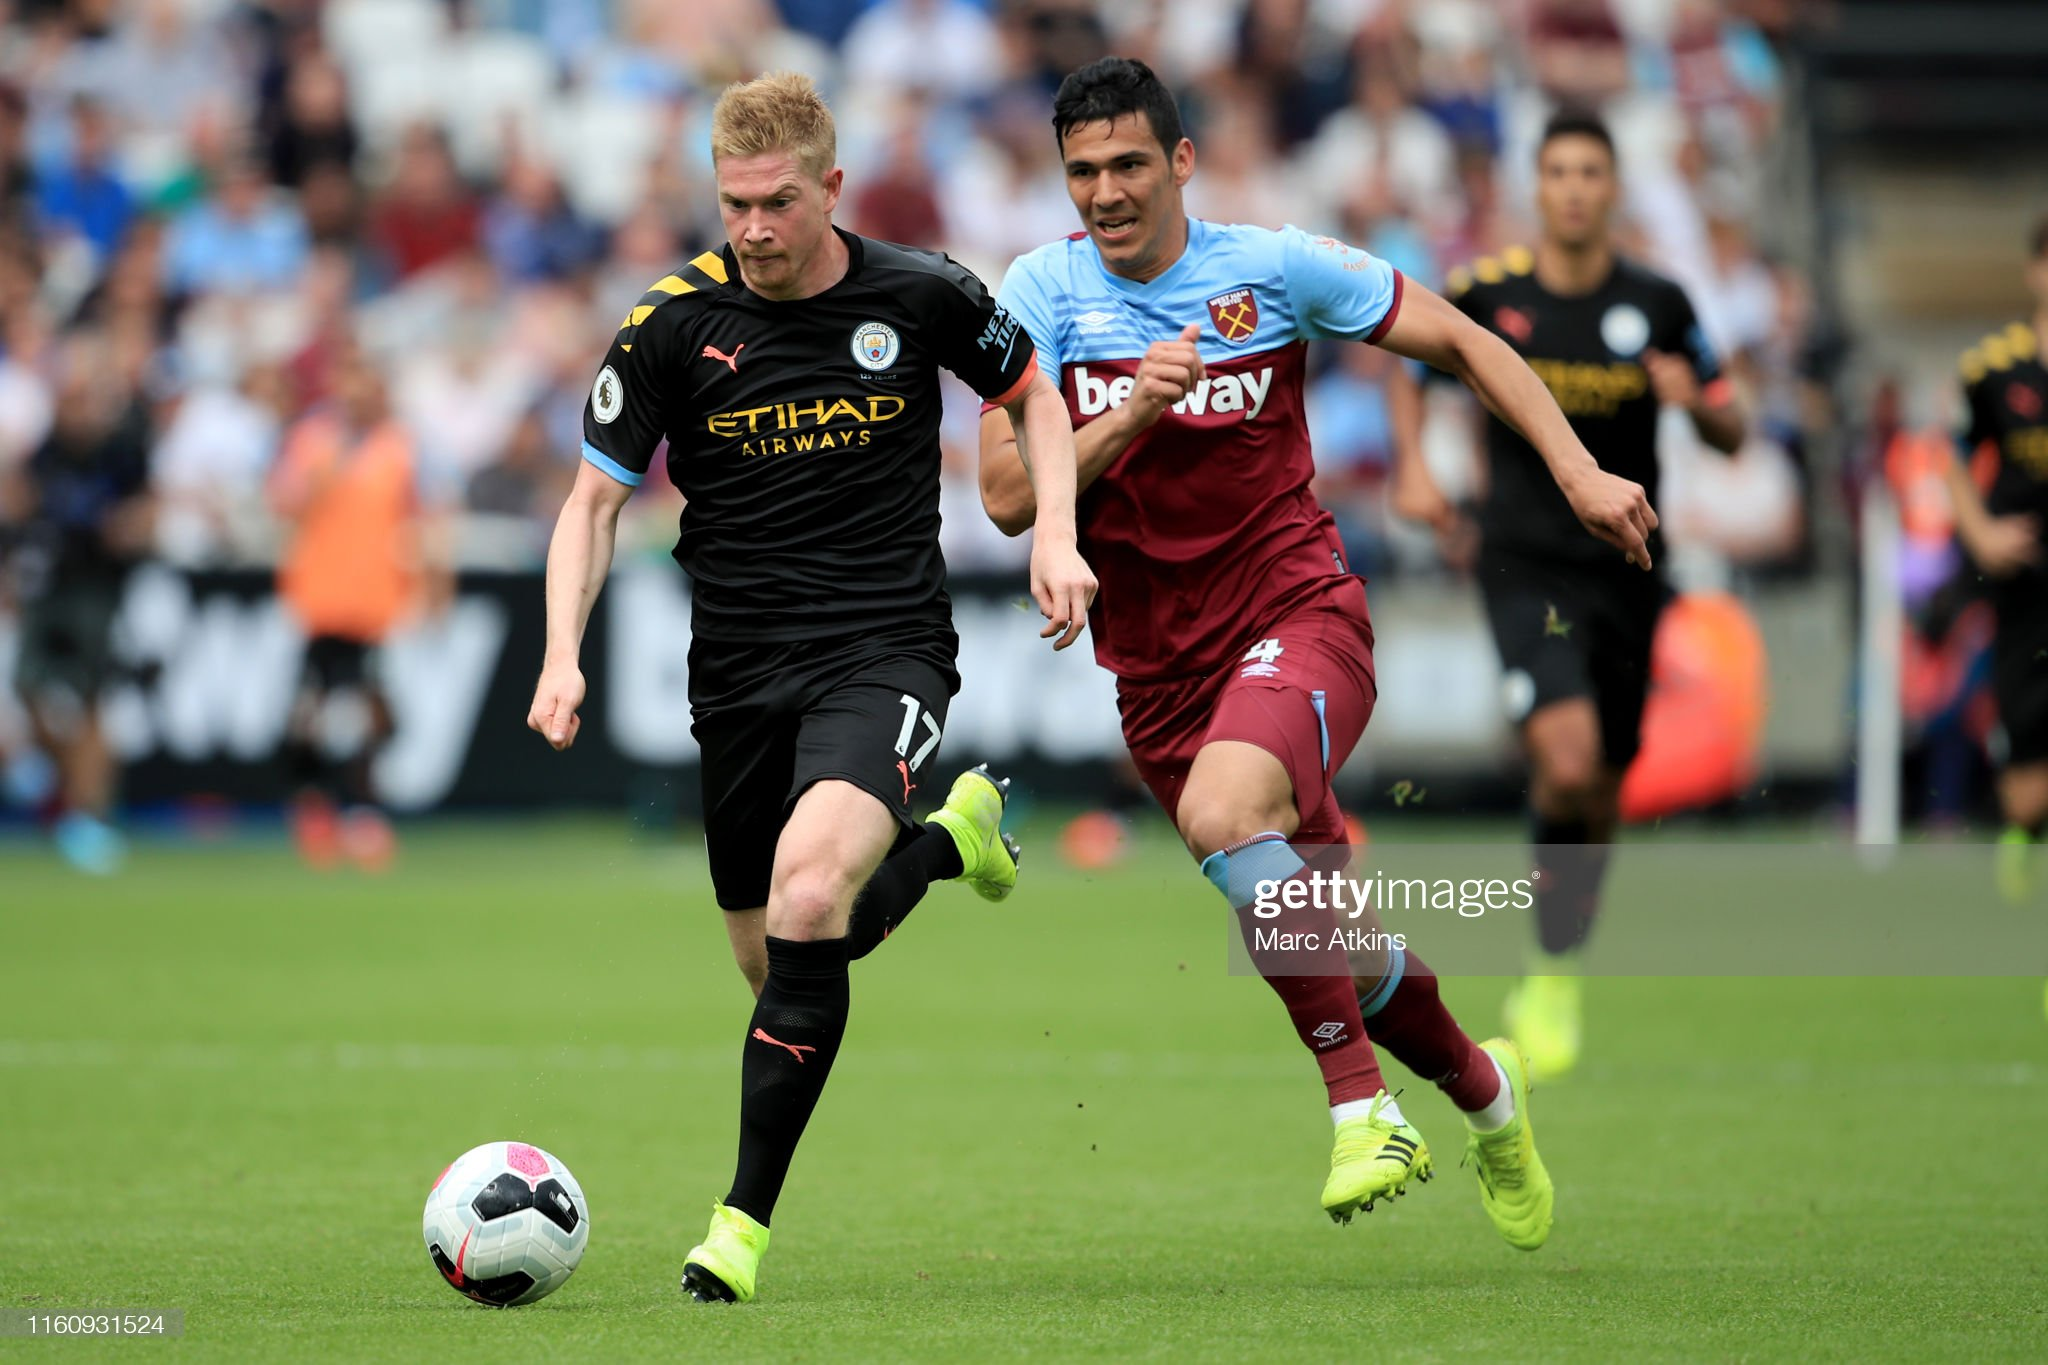 Manchester City v West Ham preview, prediction and odds